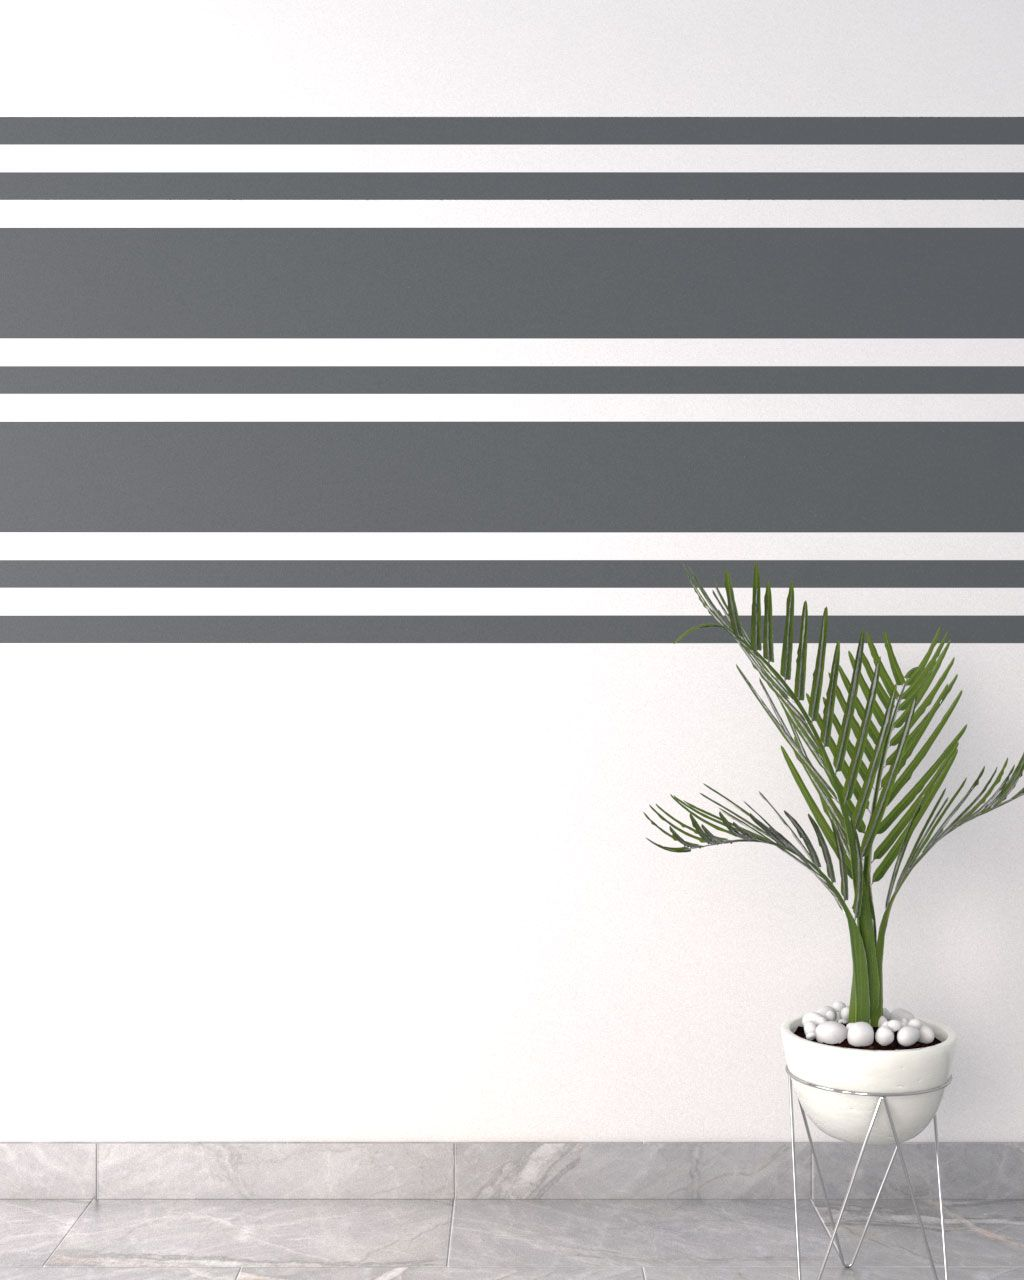 Room Design Com: Simple, Clean And Elegant White And Grey Horizontal